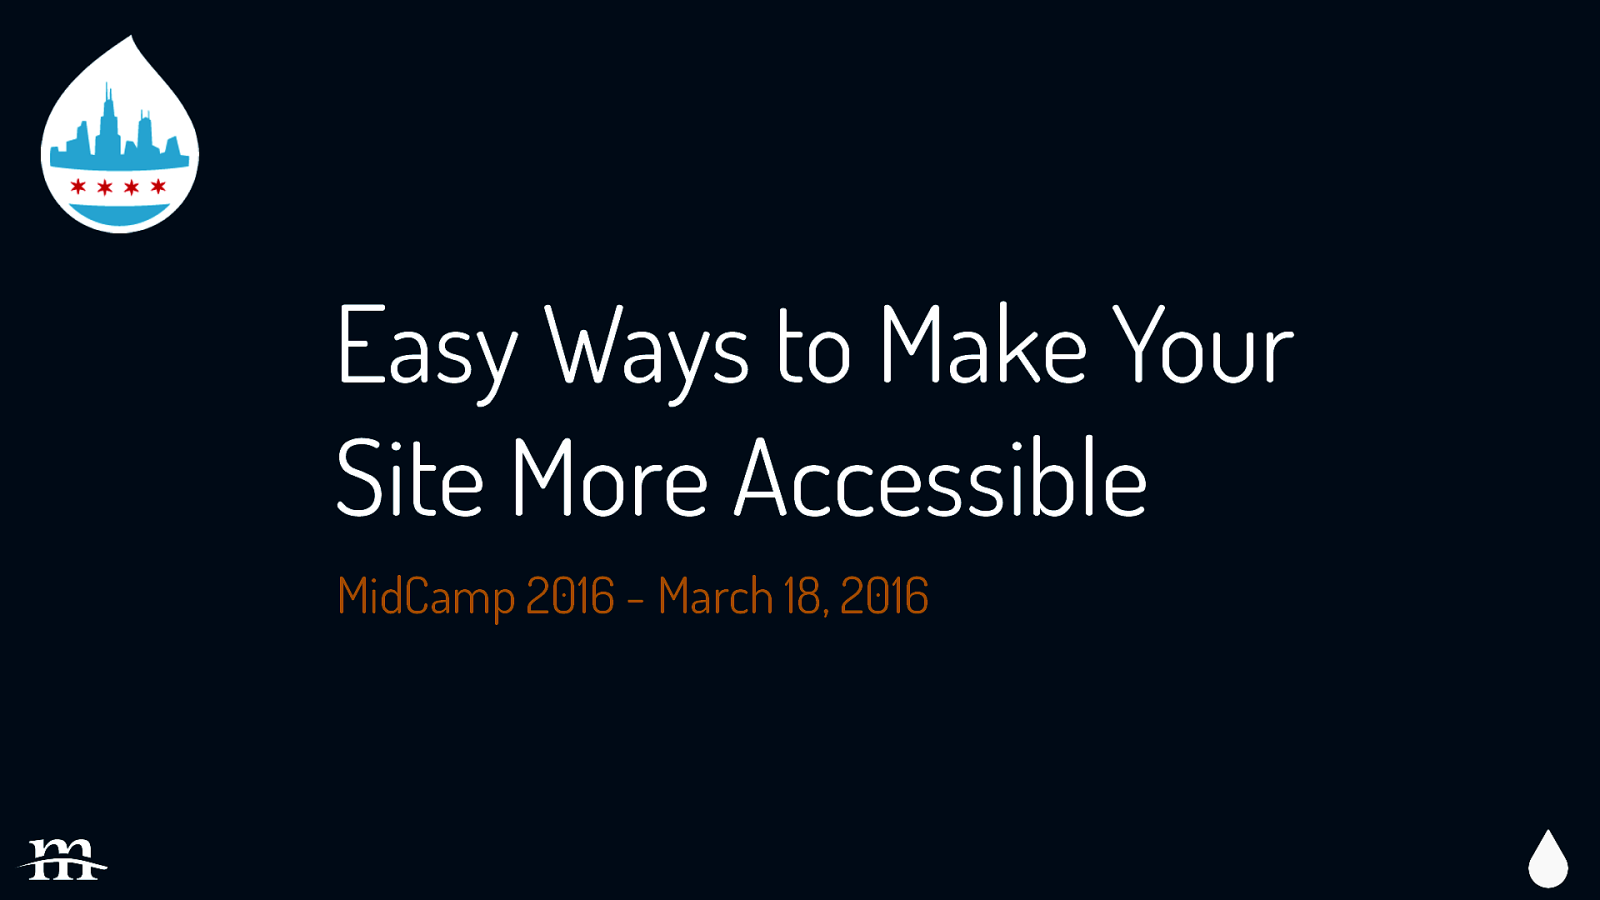 Easy Ways to Make Your Site More Accessible